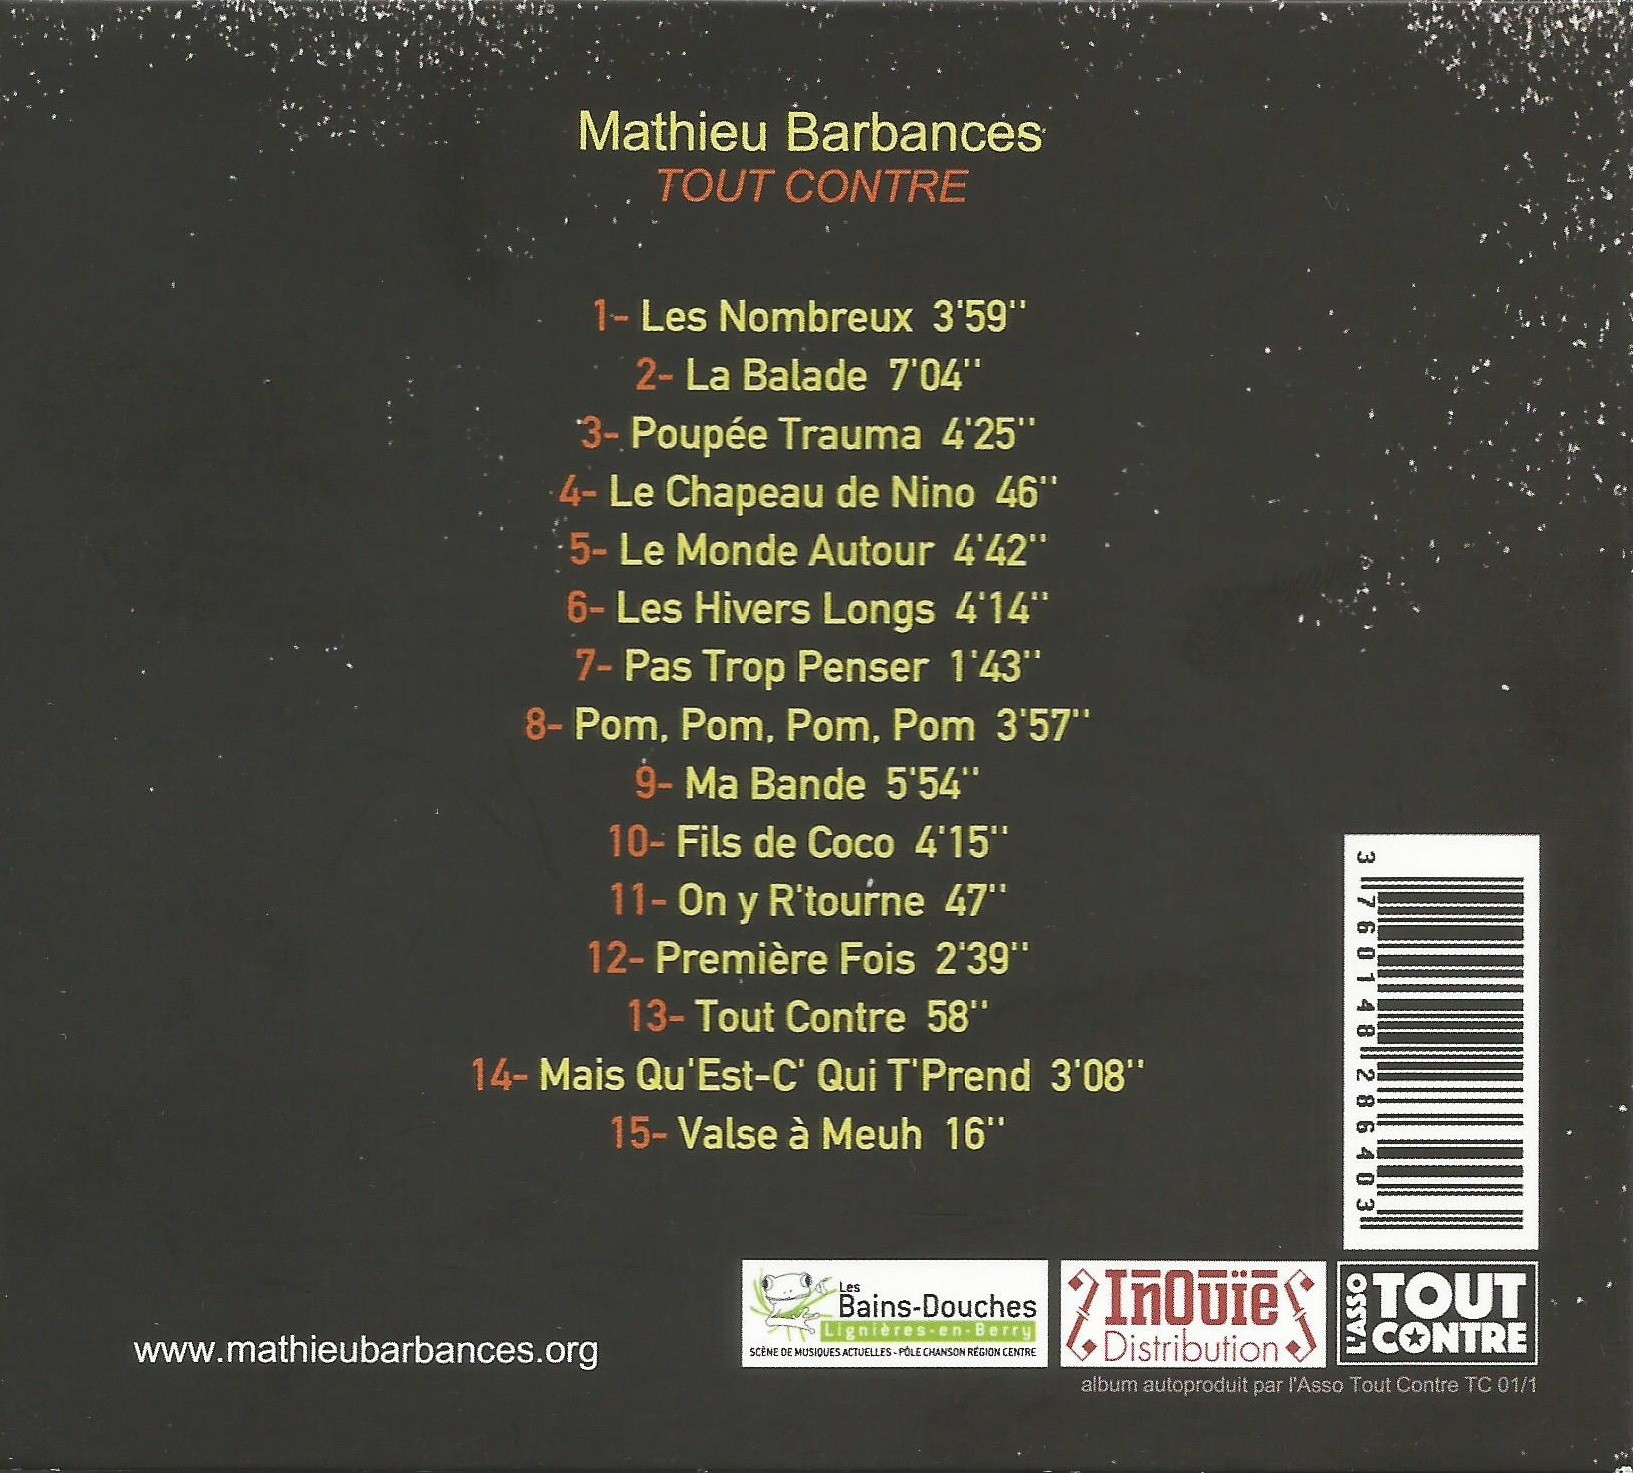 Mathieu Barbances : Tout contre